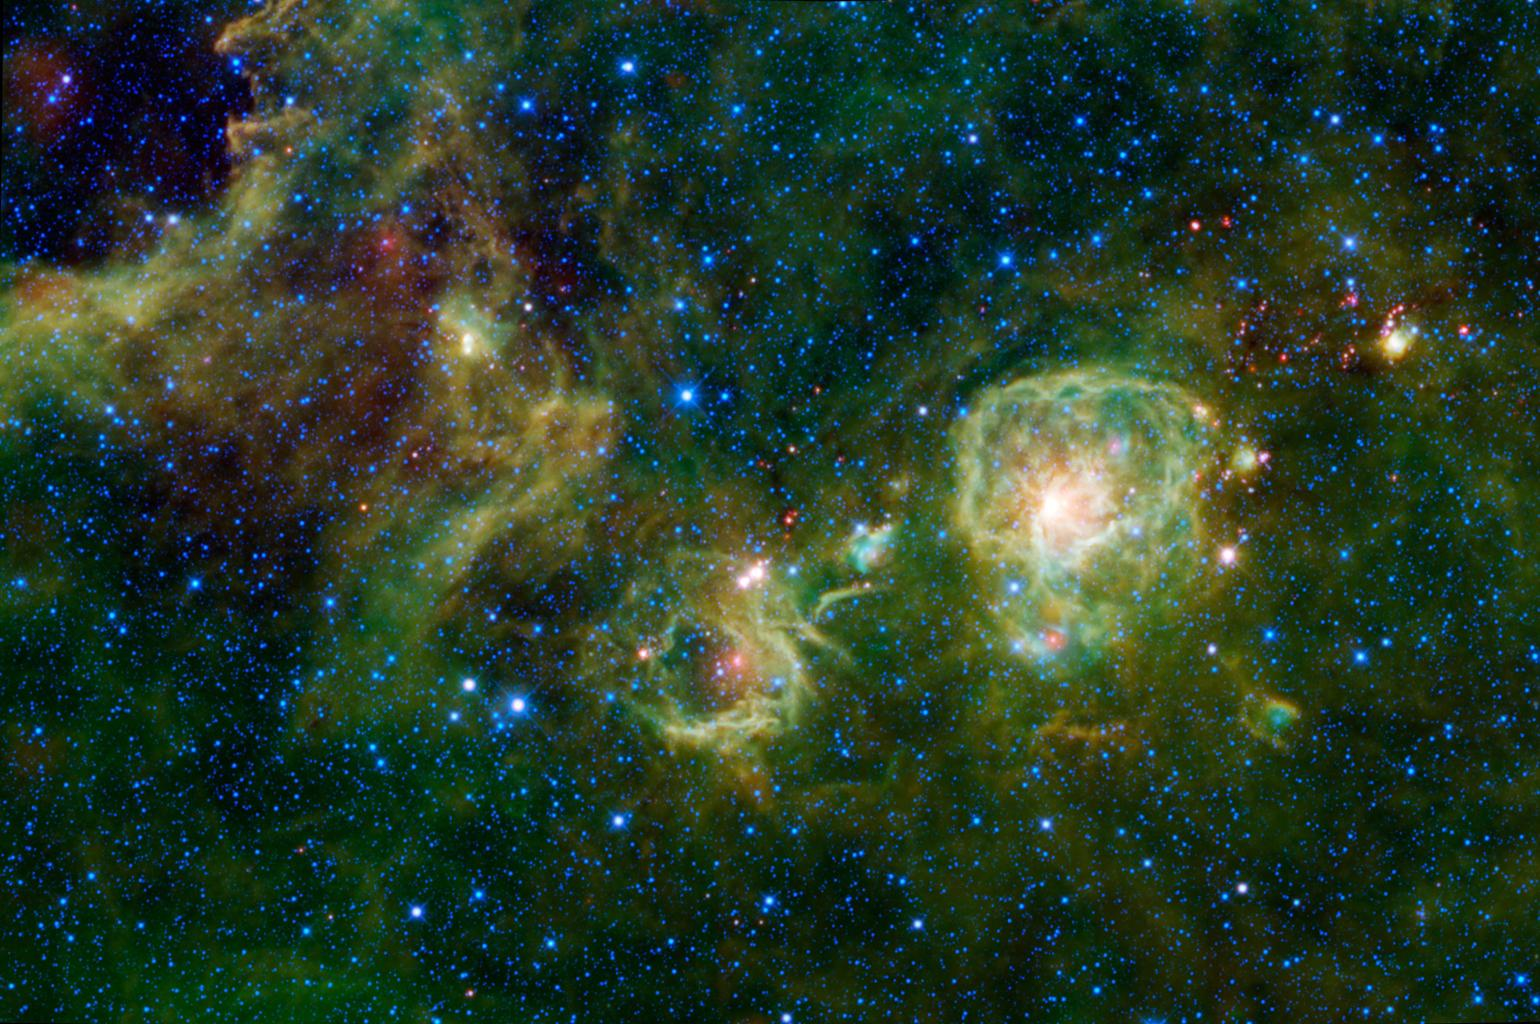 New stars are forming inside this giant cloud of dust and gas as seen in infrared light by NASA's Wide-field Infrared Survey Explorer, spanning across the constellation Vela.